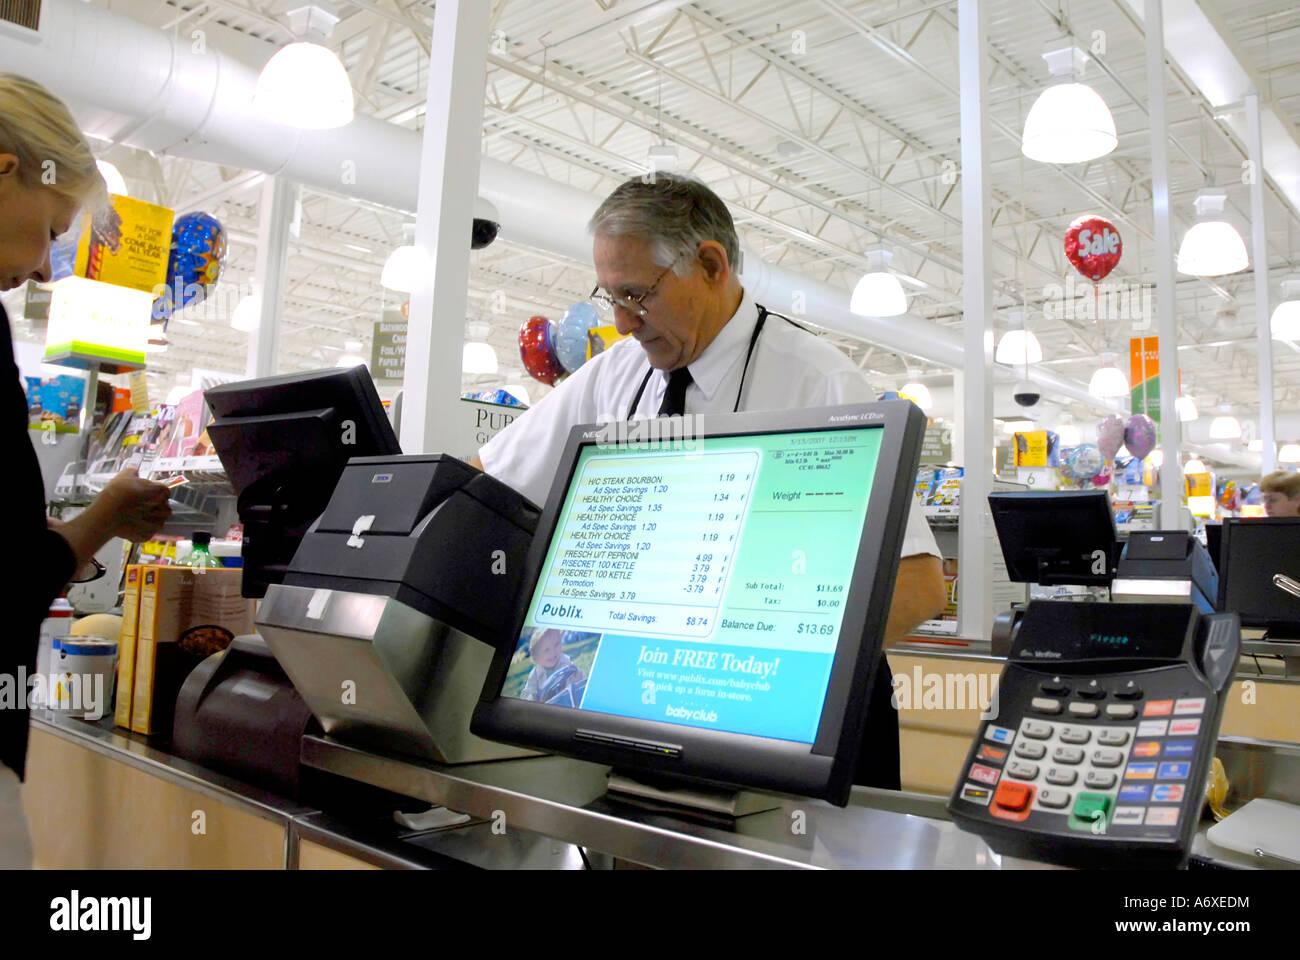 Adult Female Uses High Tech Computer Checkout System